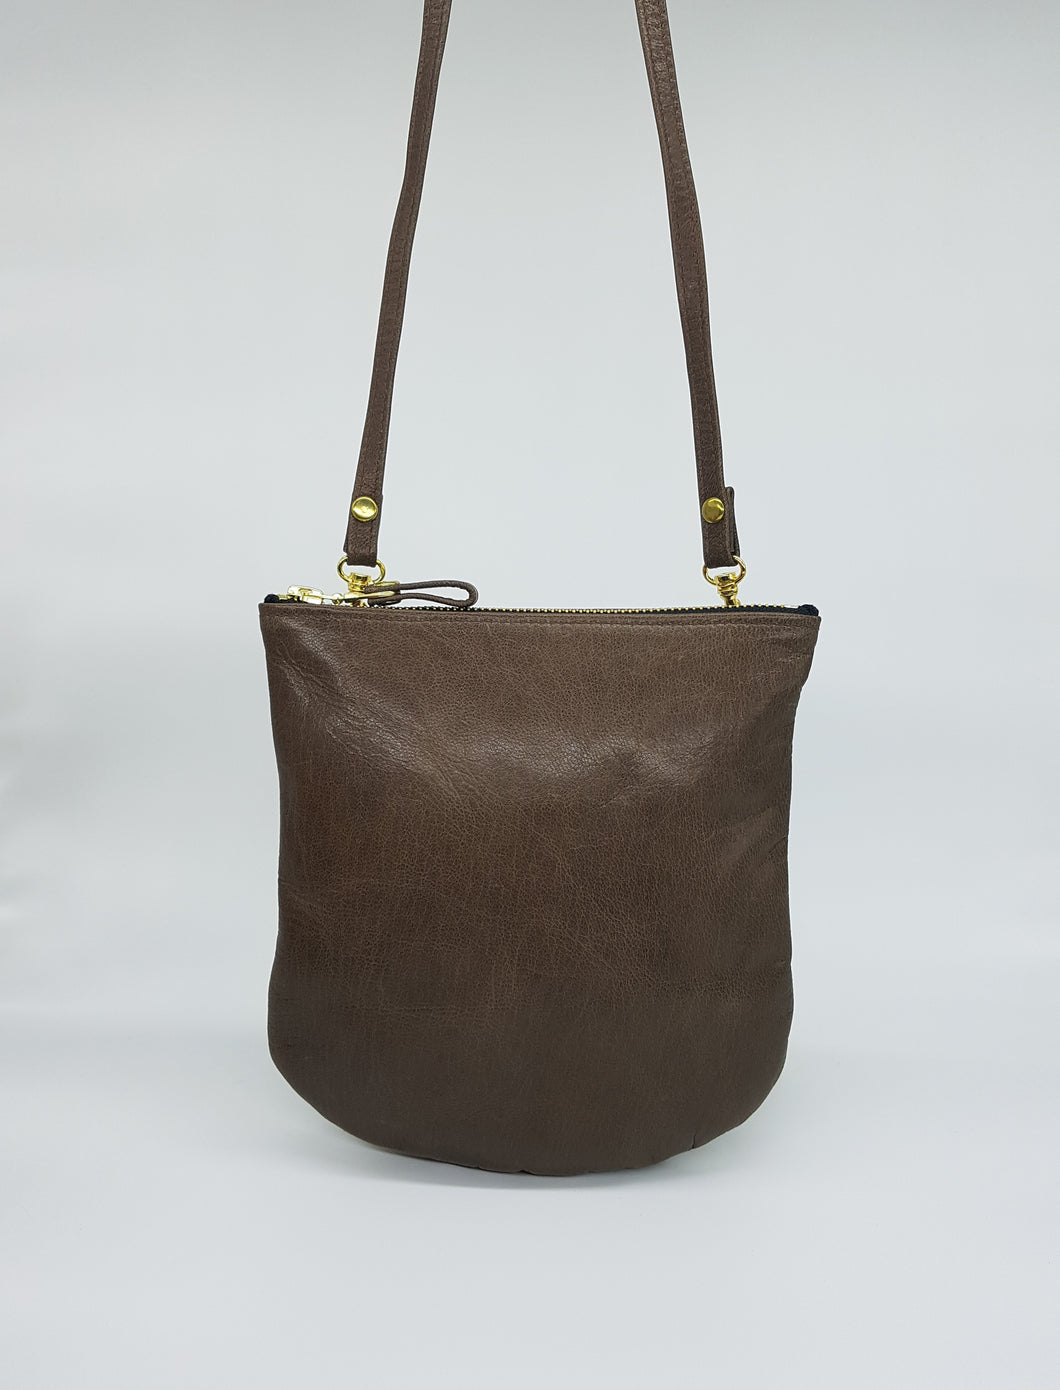 Crossbody leather handbags Shoulder handbags Australia Handmade leather handbags